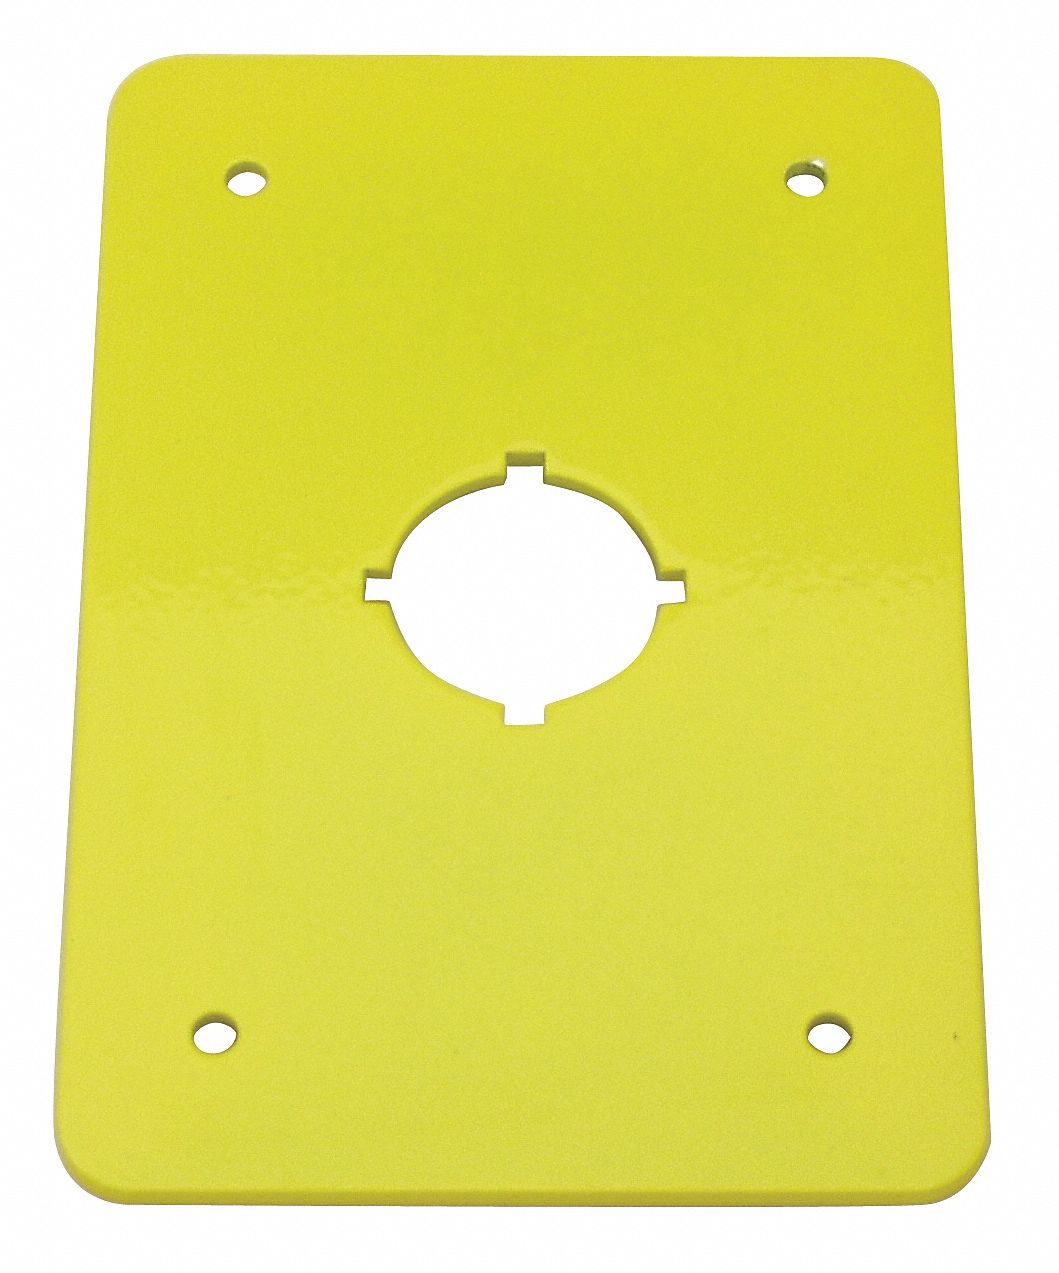 Switch Plate, Yellow, Steel, Size: 110 mm